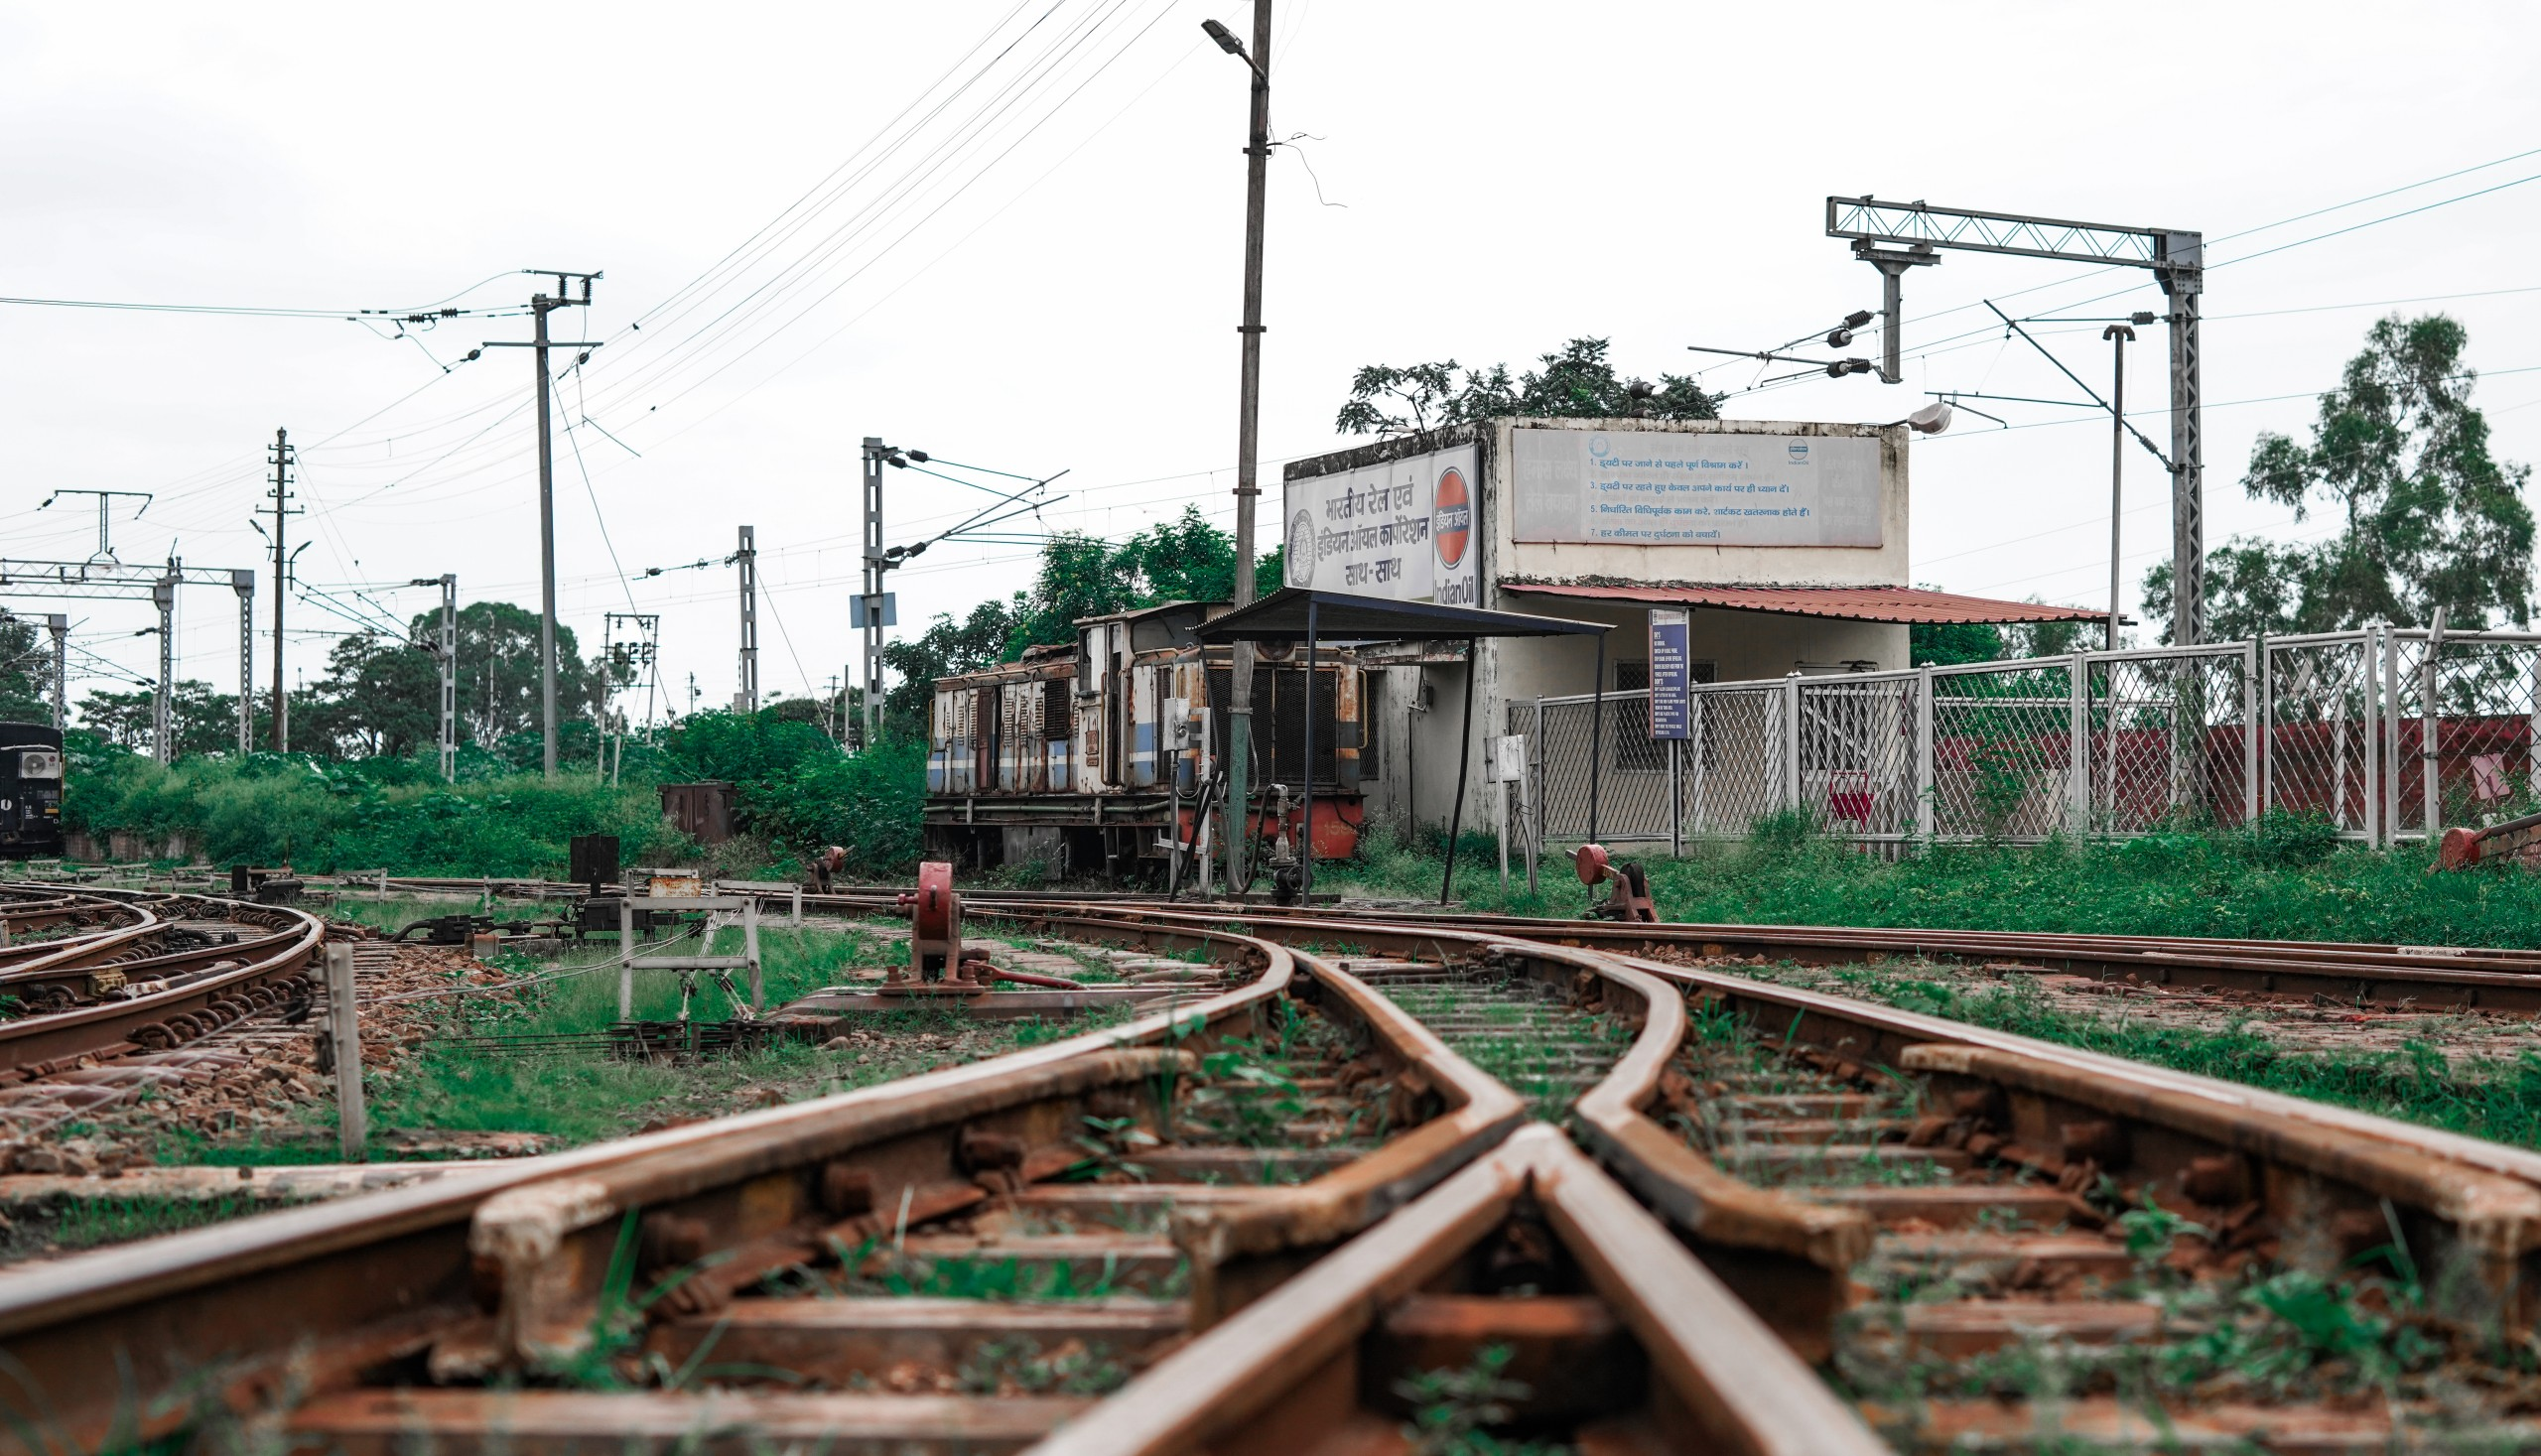 Train lines in India